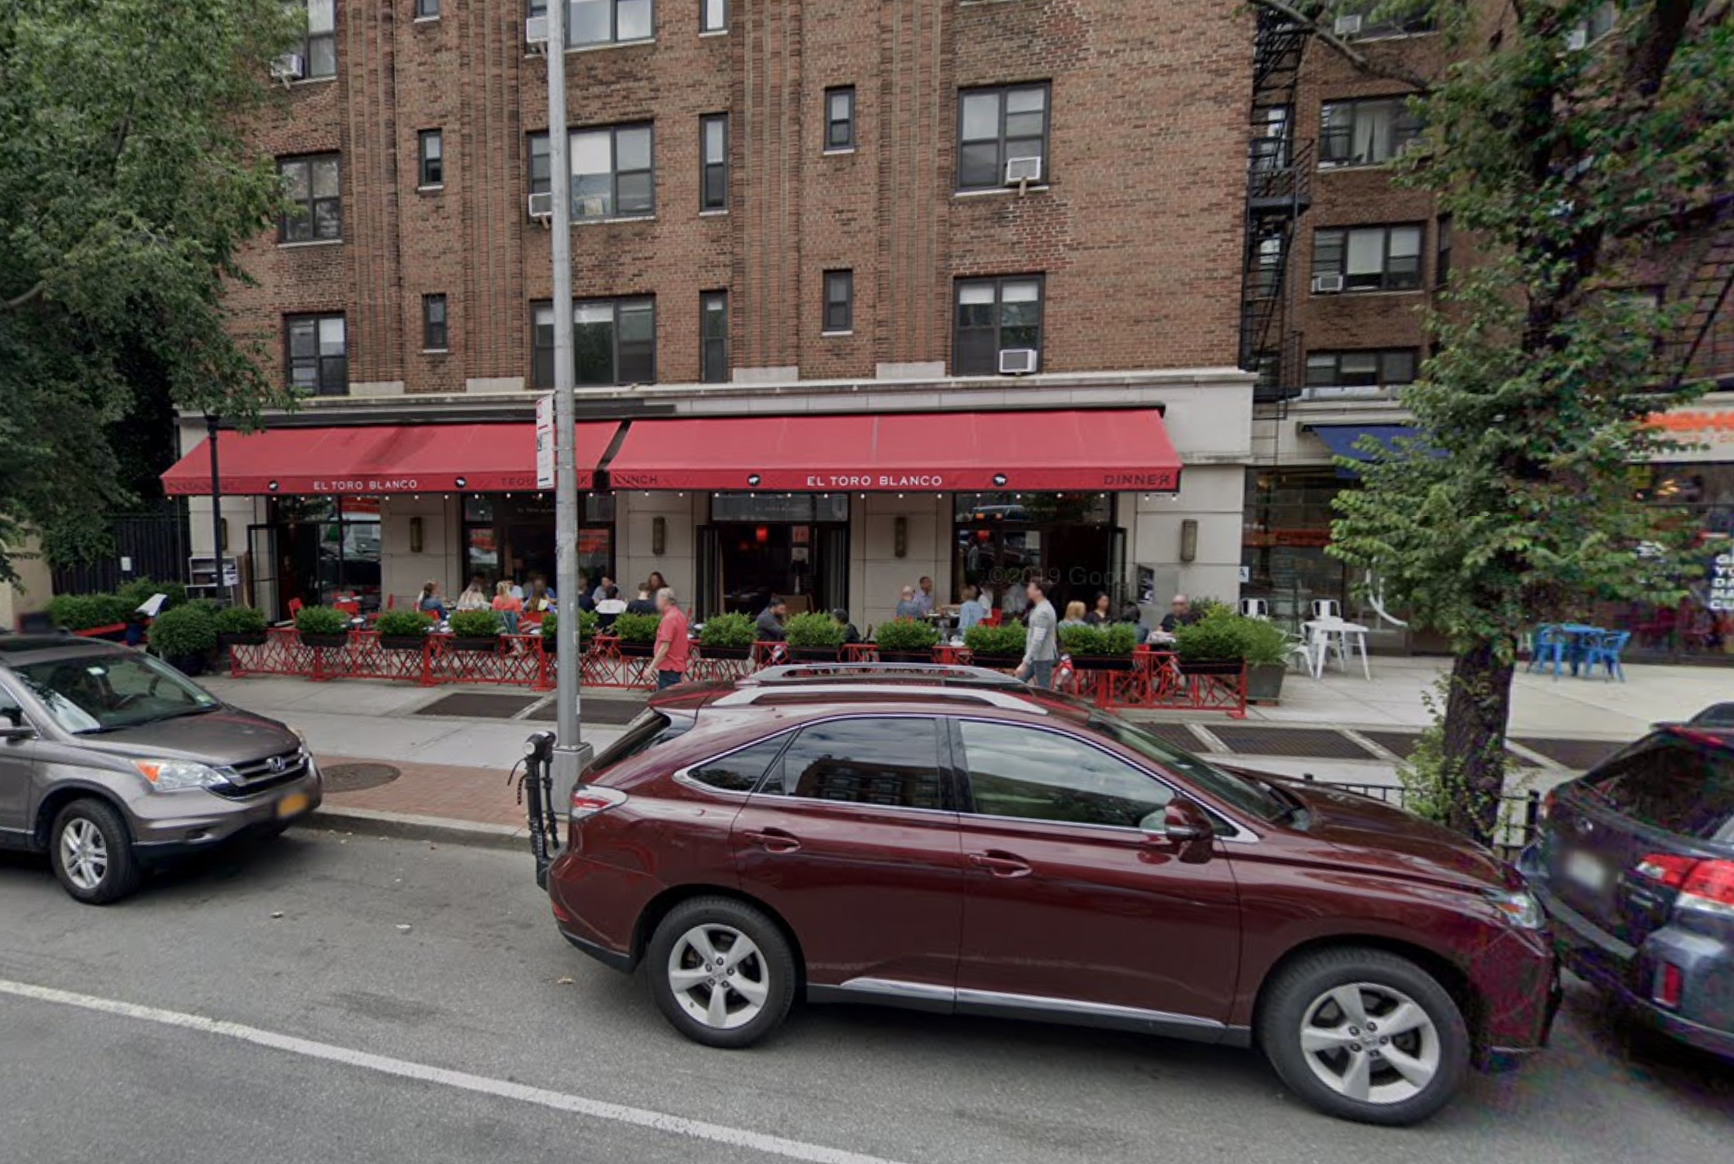 A streeview image with a car parked on the street and a restaurant with a red awning in the background.